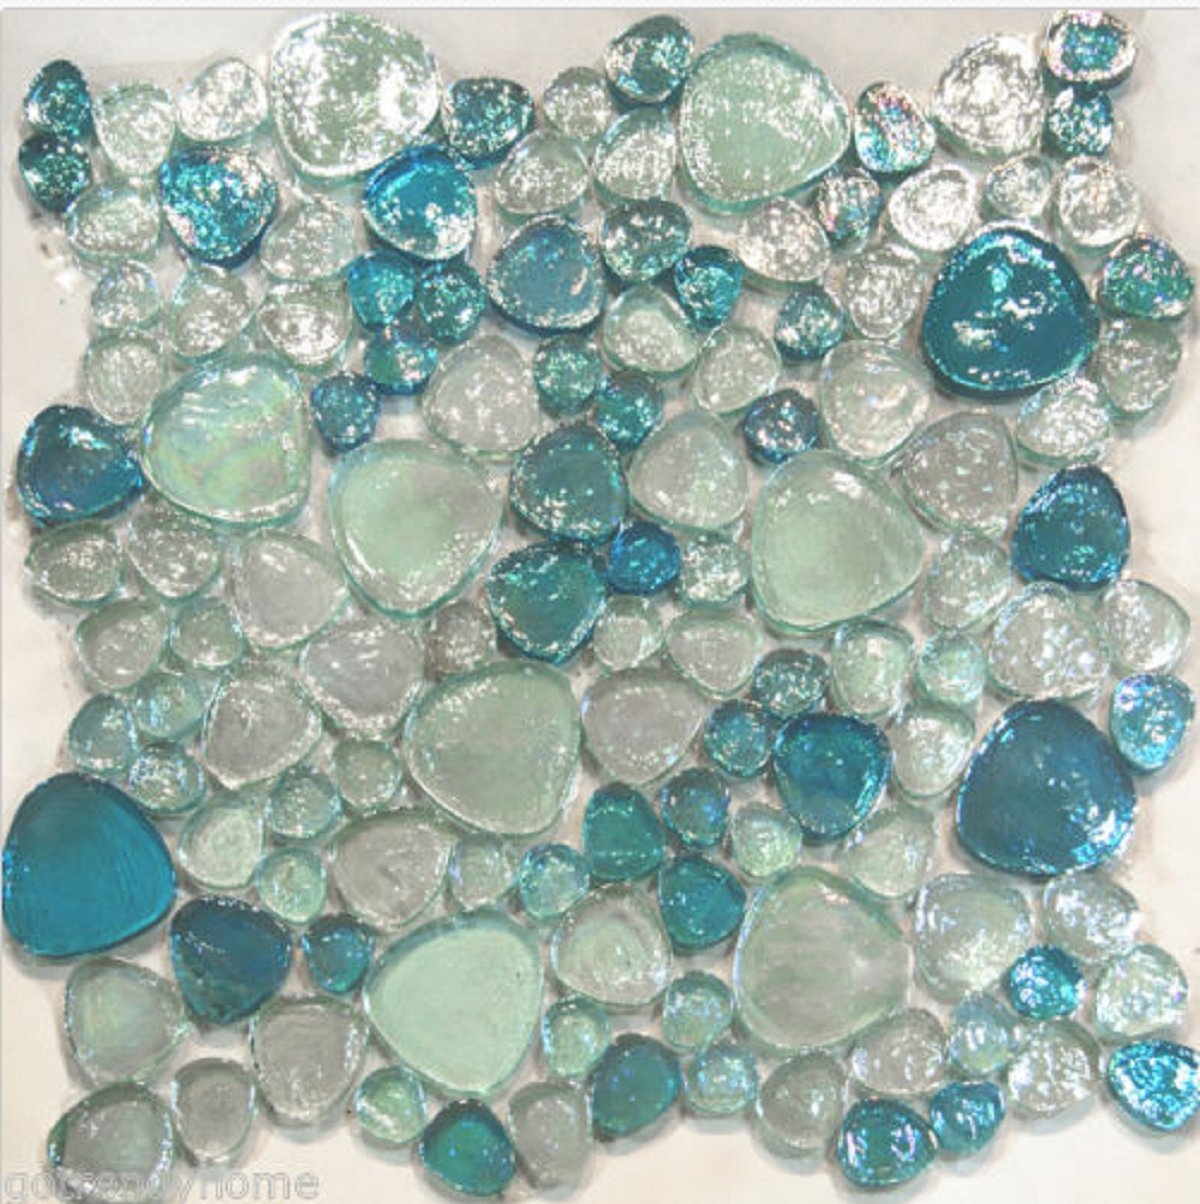 USA Premium Store 10SF-Blue Iridescent Random Pattern Glass Mosaic Tile Backsplash Kitchen Spa by USA Premium Store